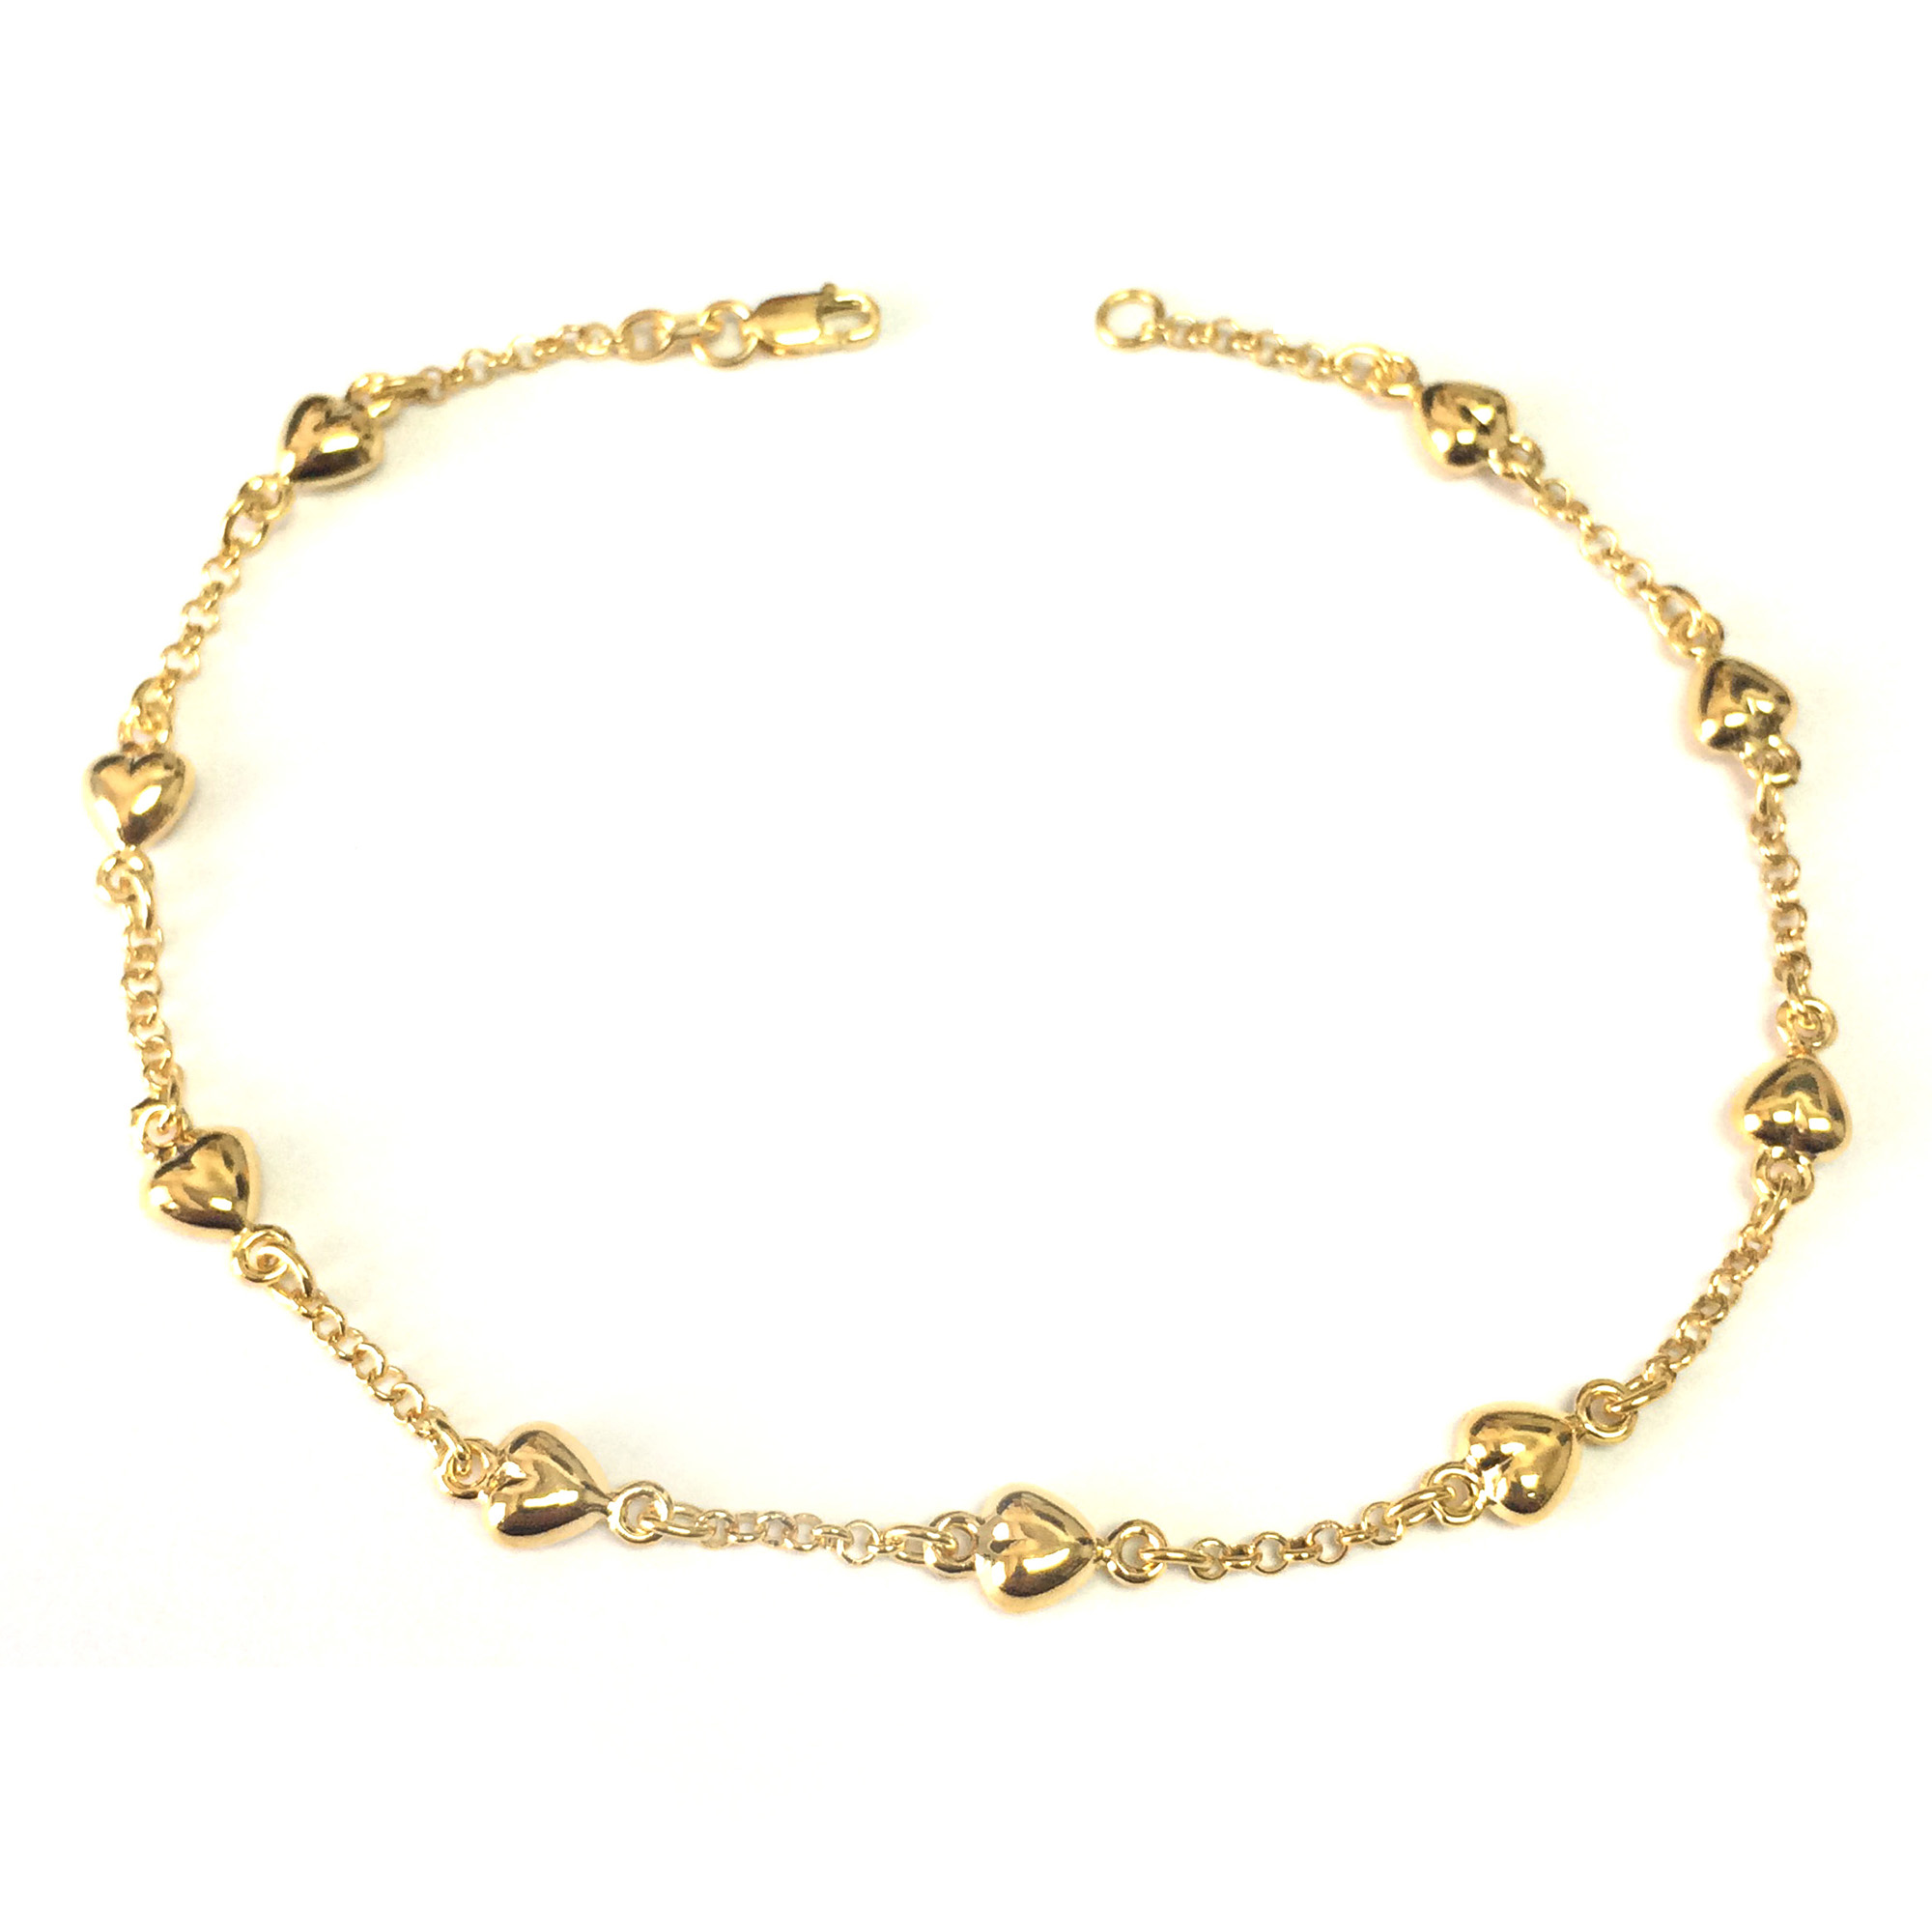 14K Yellow Gold Puffed Hearts Anklet, 10″